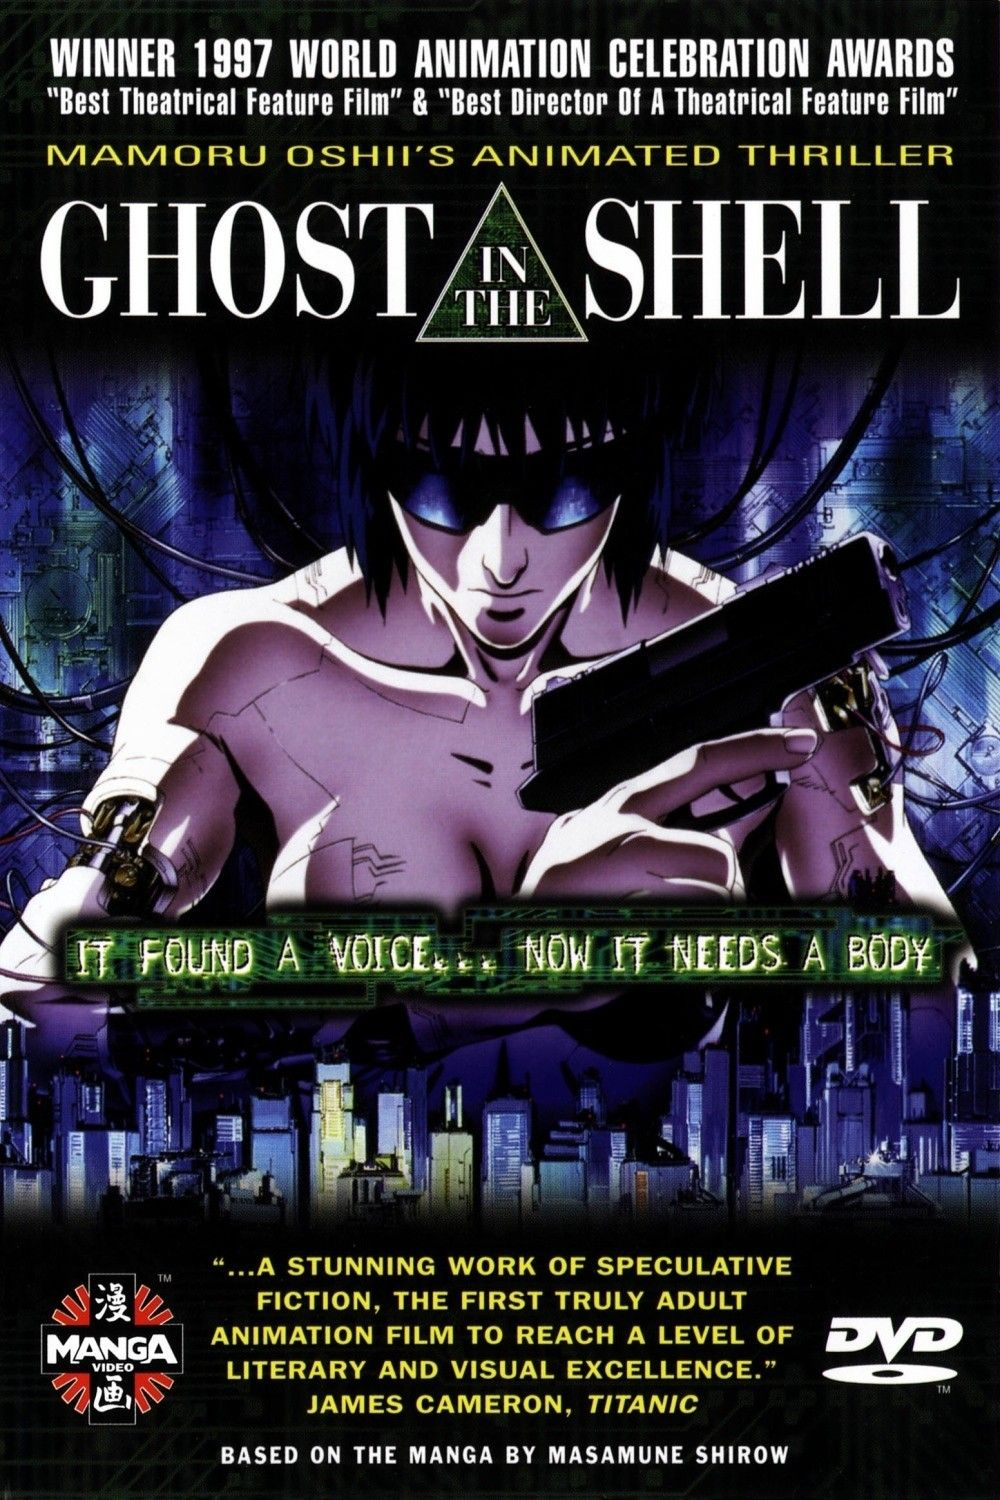 GHOST IN THE SHELL - 1995 - directed by Mamoru Oshii